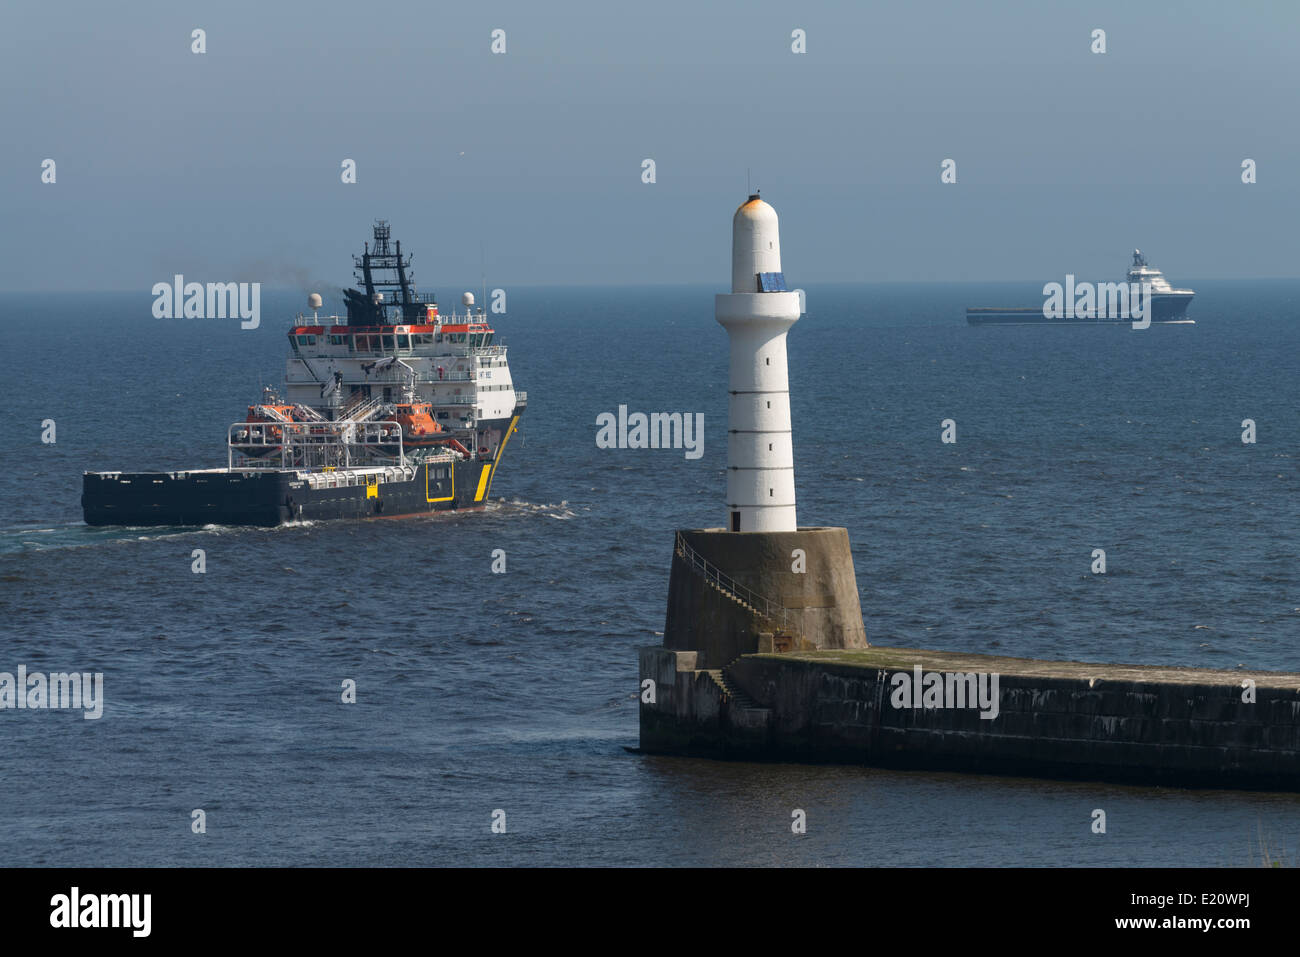 An oil supply vessel leaves Aberdeen harbour for the North Sea with the breakwater and light house in the foreground. - Stock Image